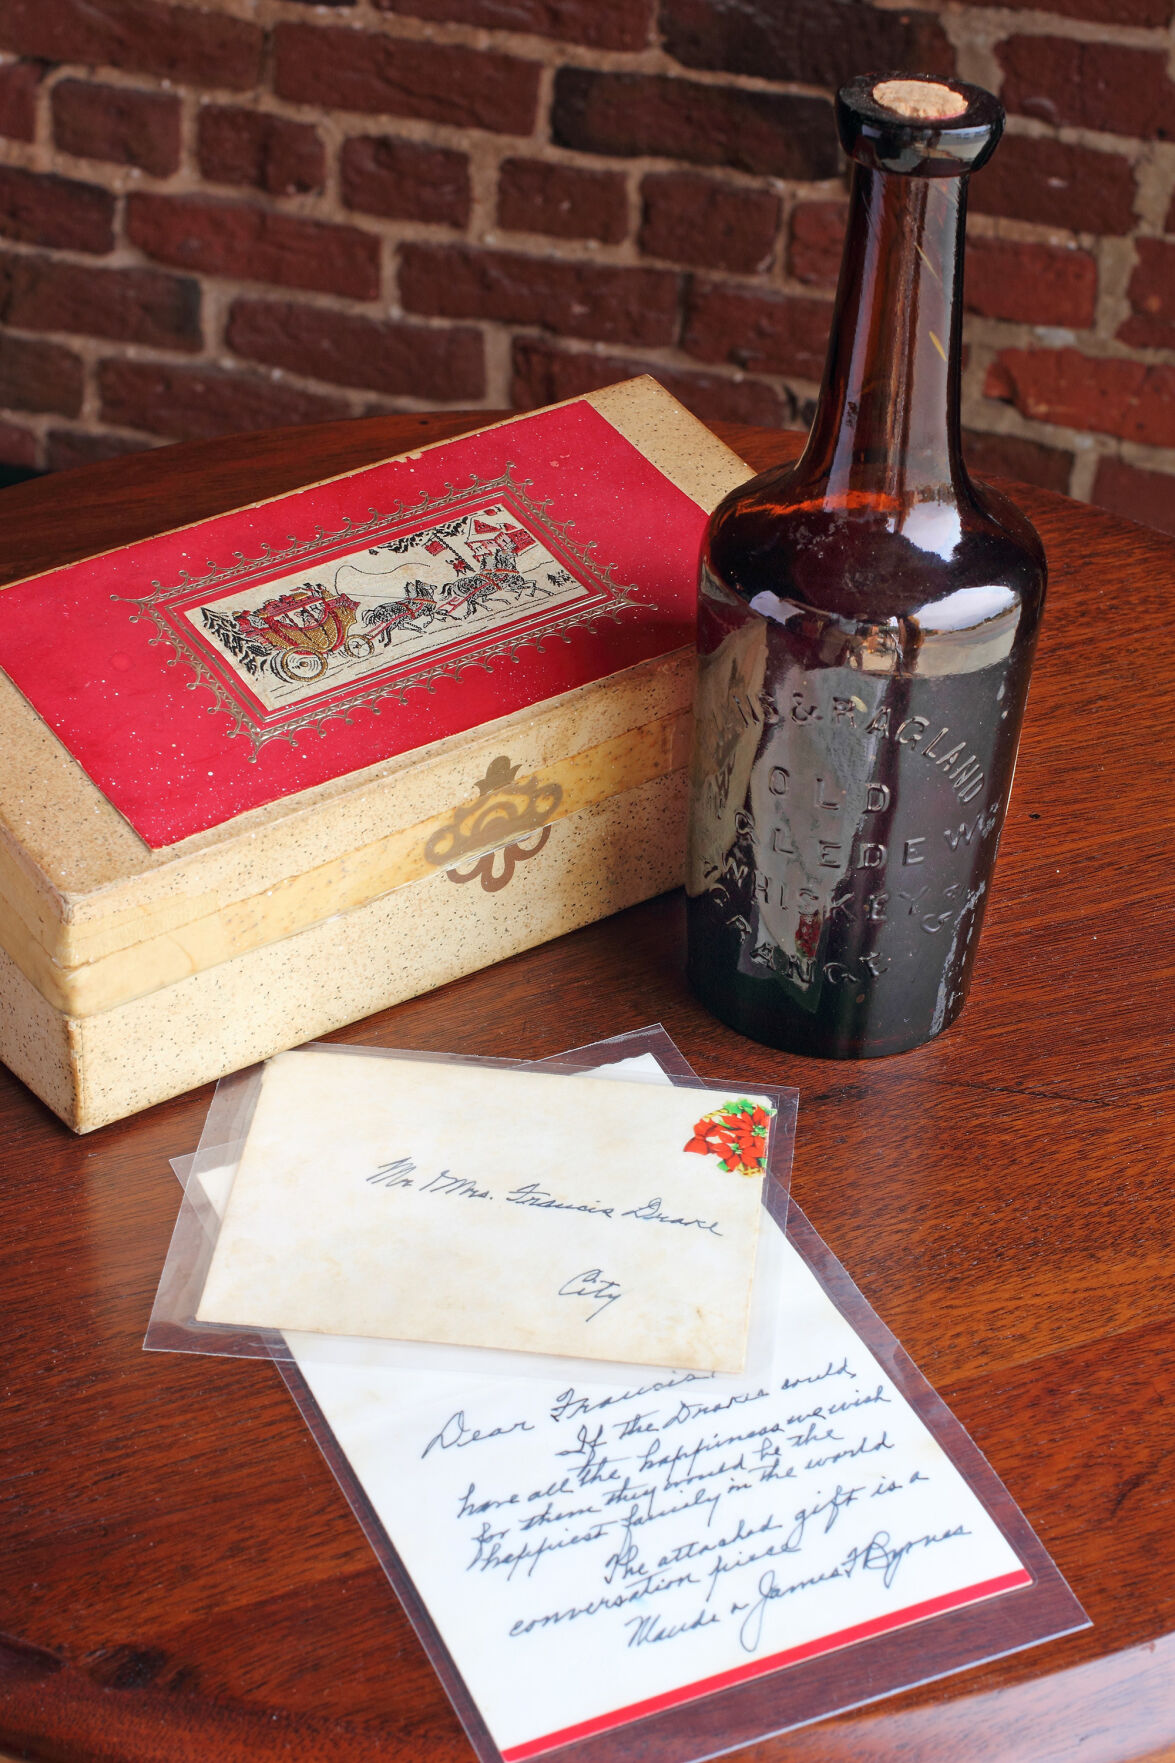 South Carolinian Rex Woolbright found the bottle of whiskey when going through his uncle's estate.